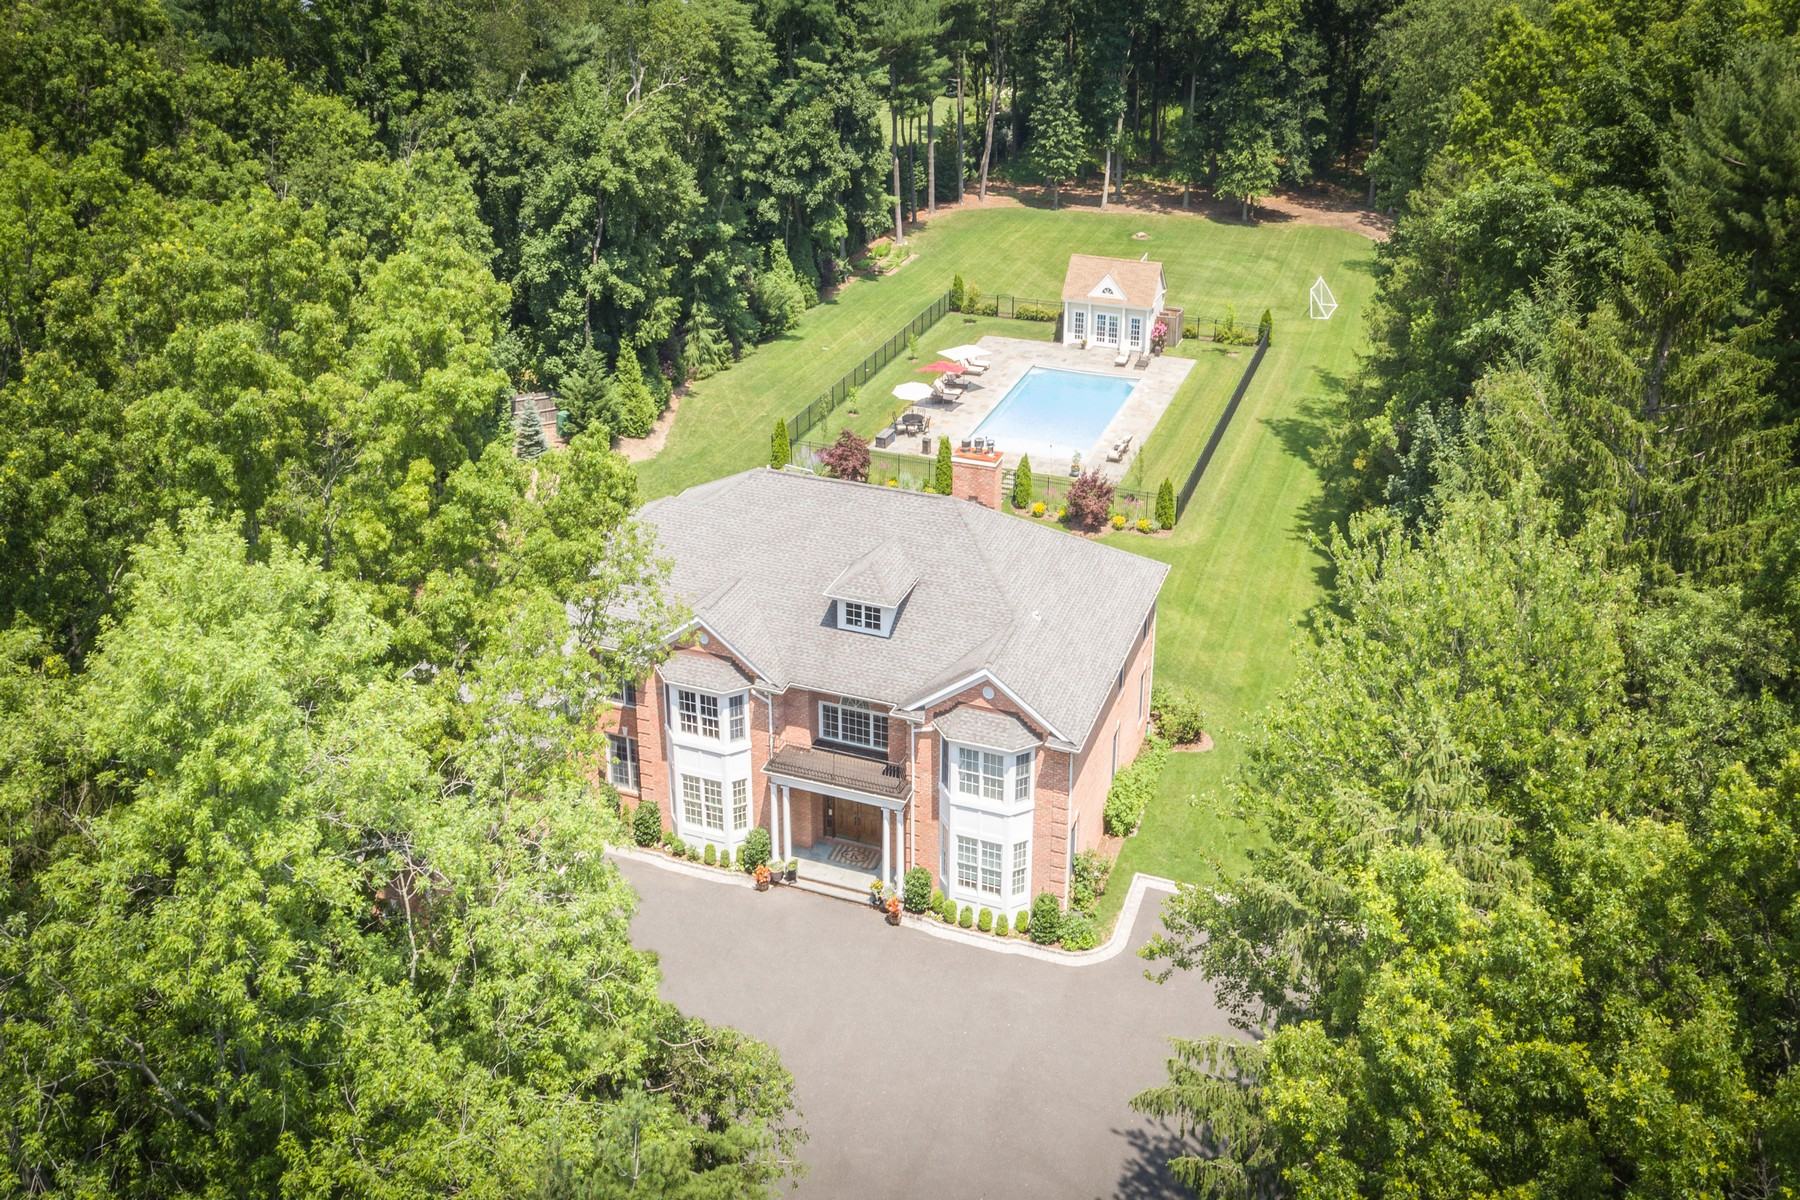 Single Family Home for Sale at Colonial 92 Mccouns Ln Old Brookville, New York, 11545 United States